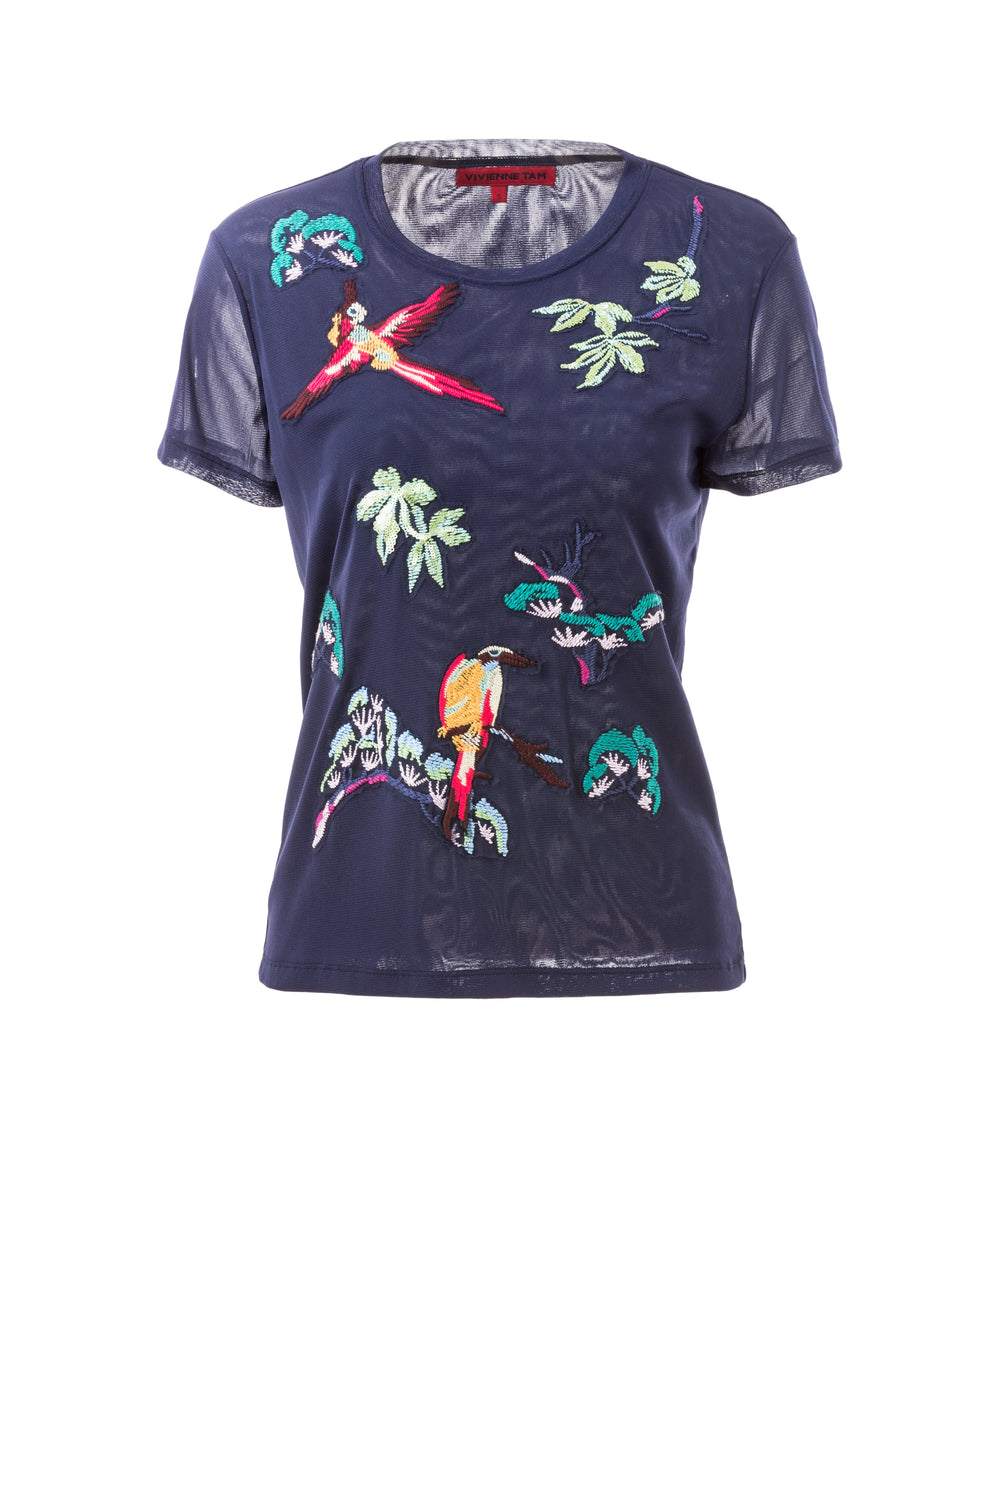 Womens Navy Multi Navy Bird Tree Embroidery Top